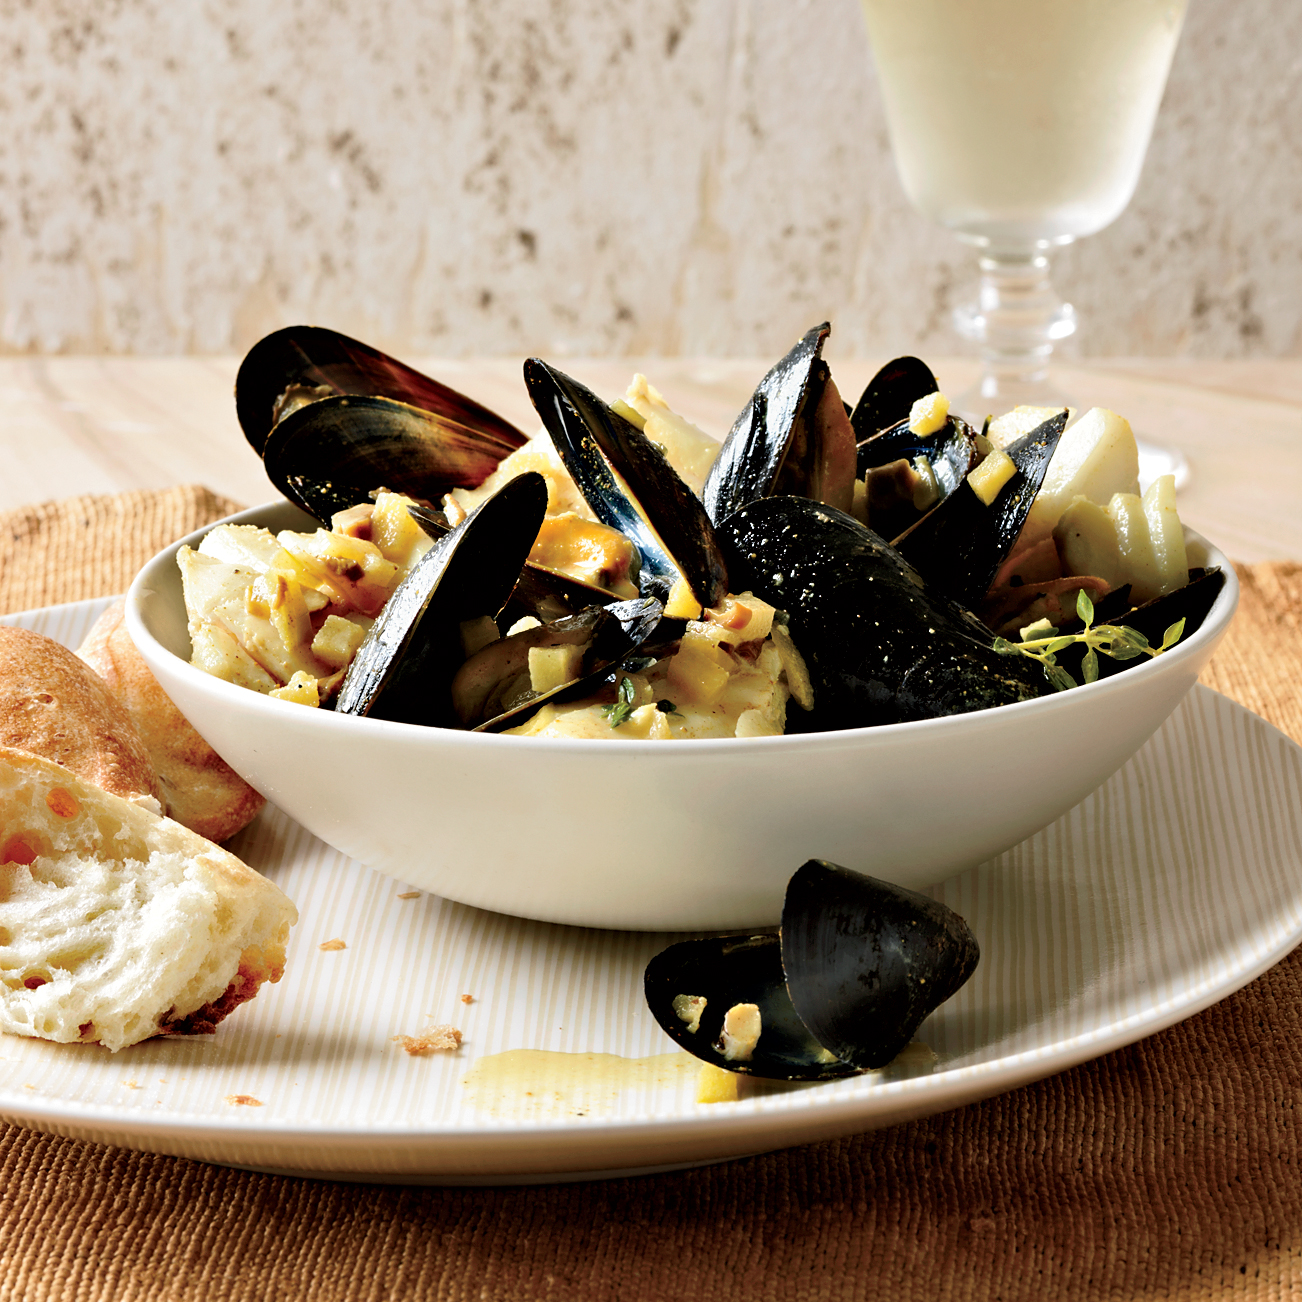 201110-r-curried-cod-and-mussels.jpg